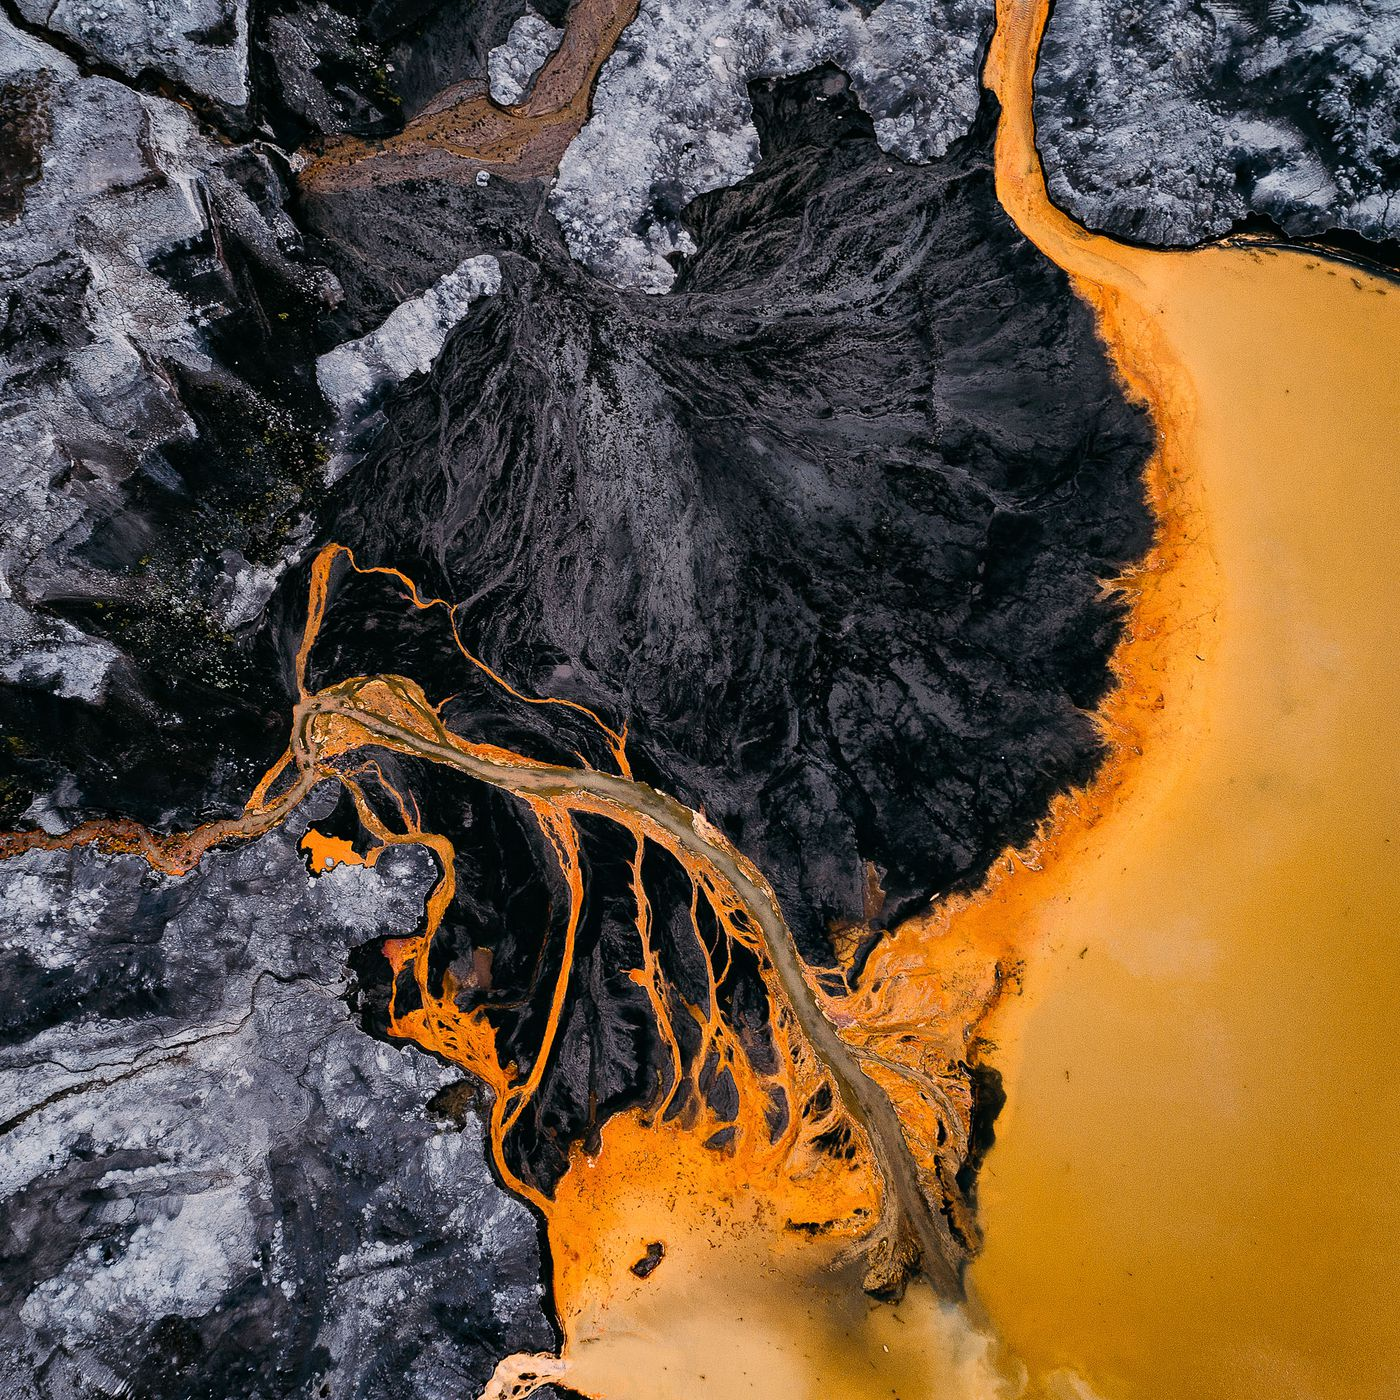 Tom Hegen's aerial photography captures the human impact on